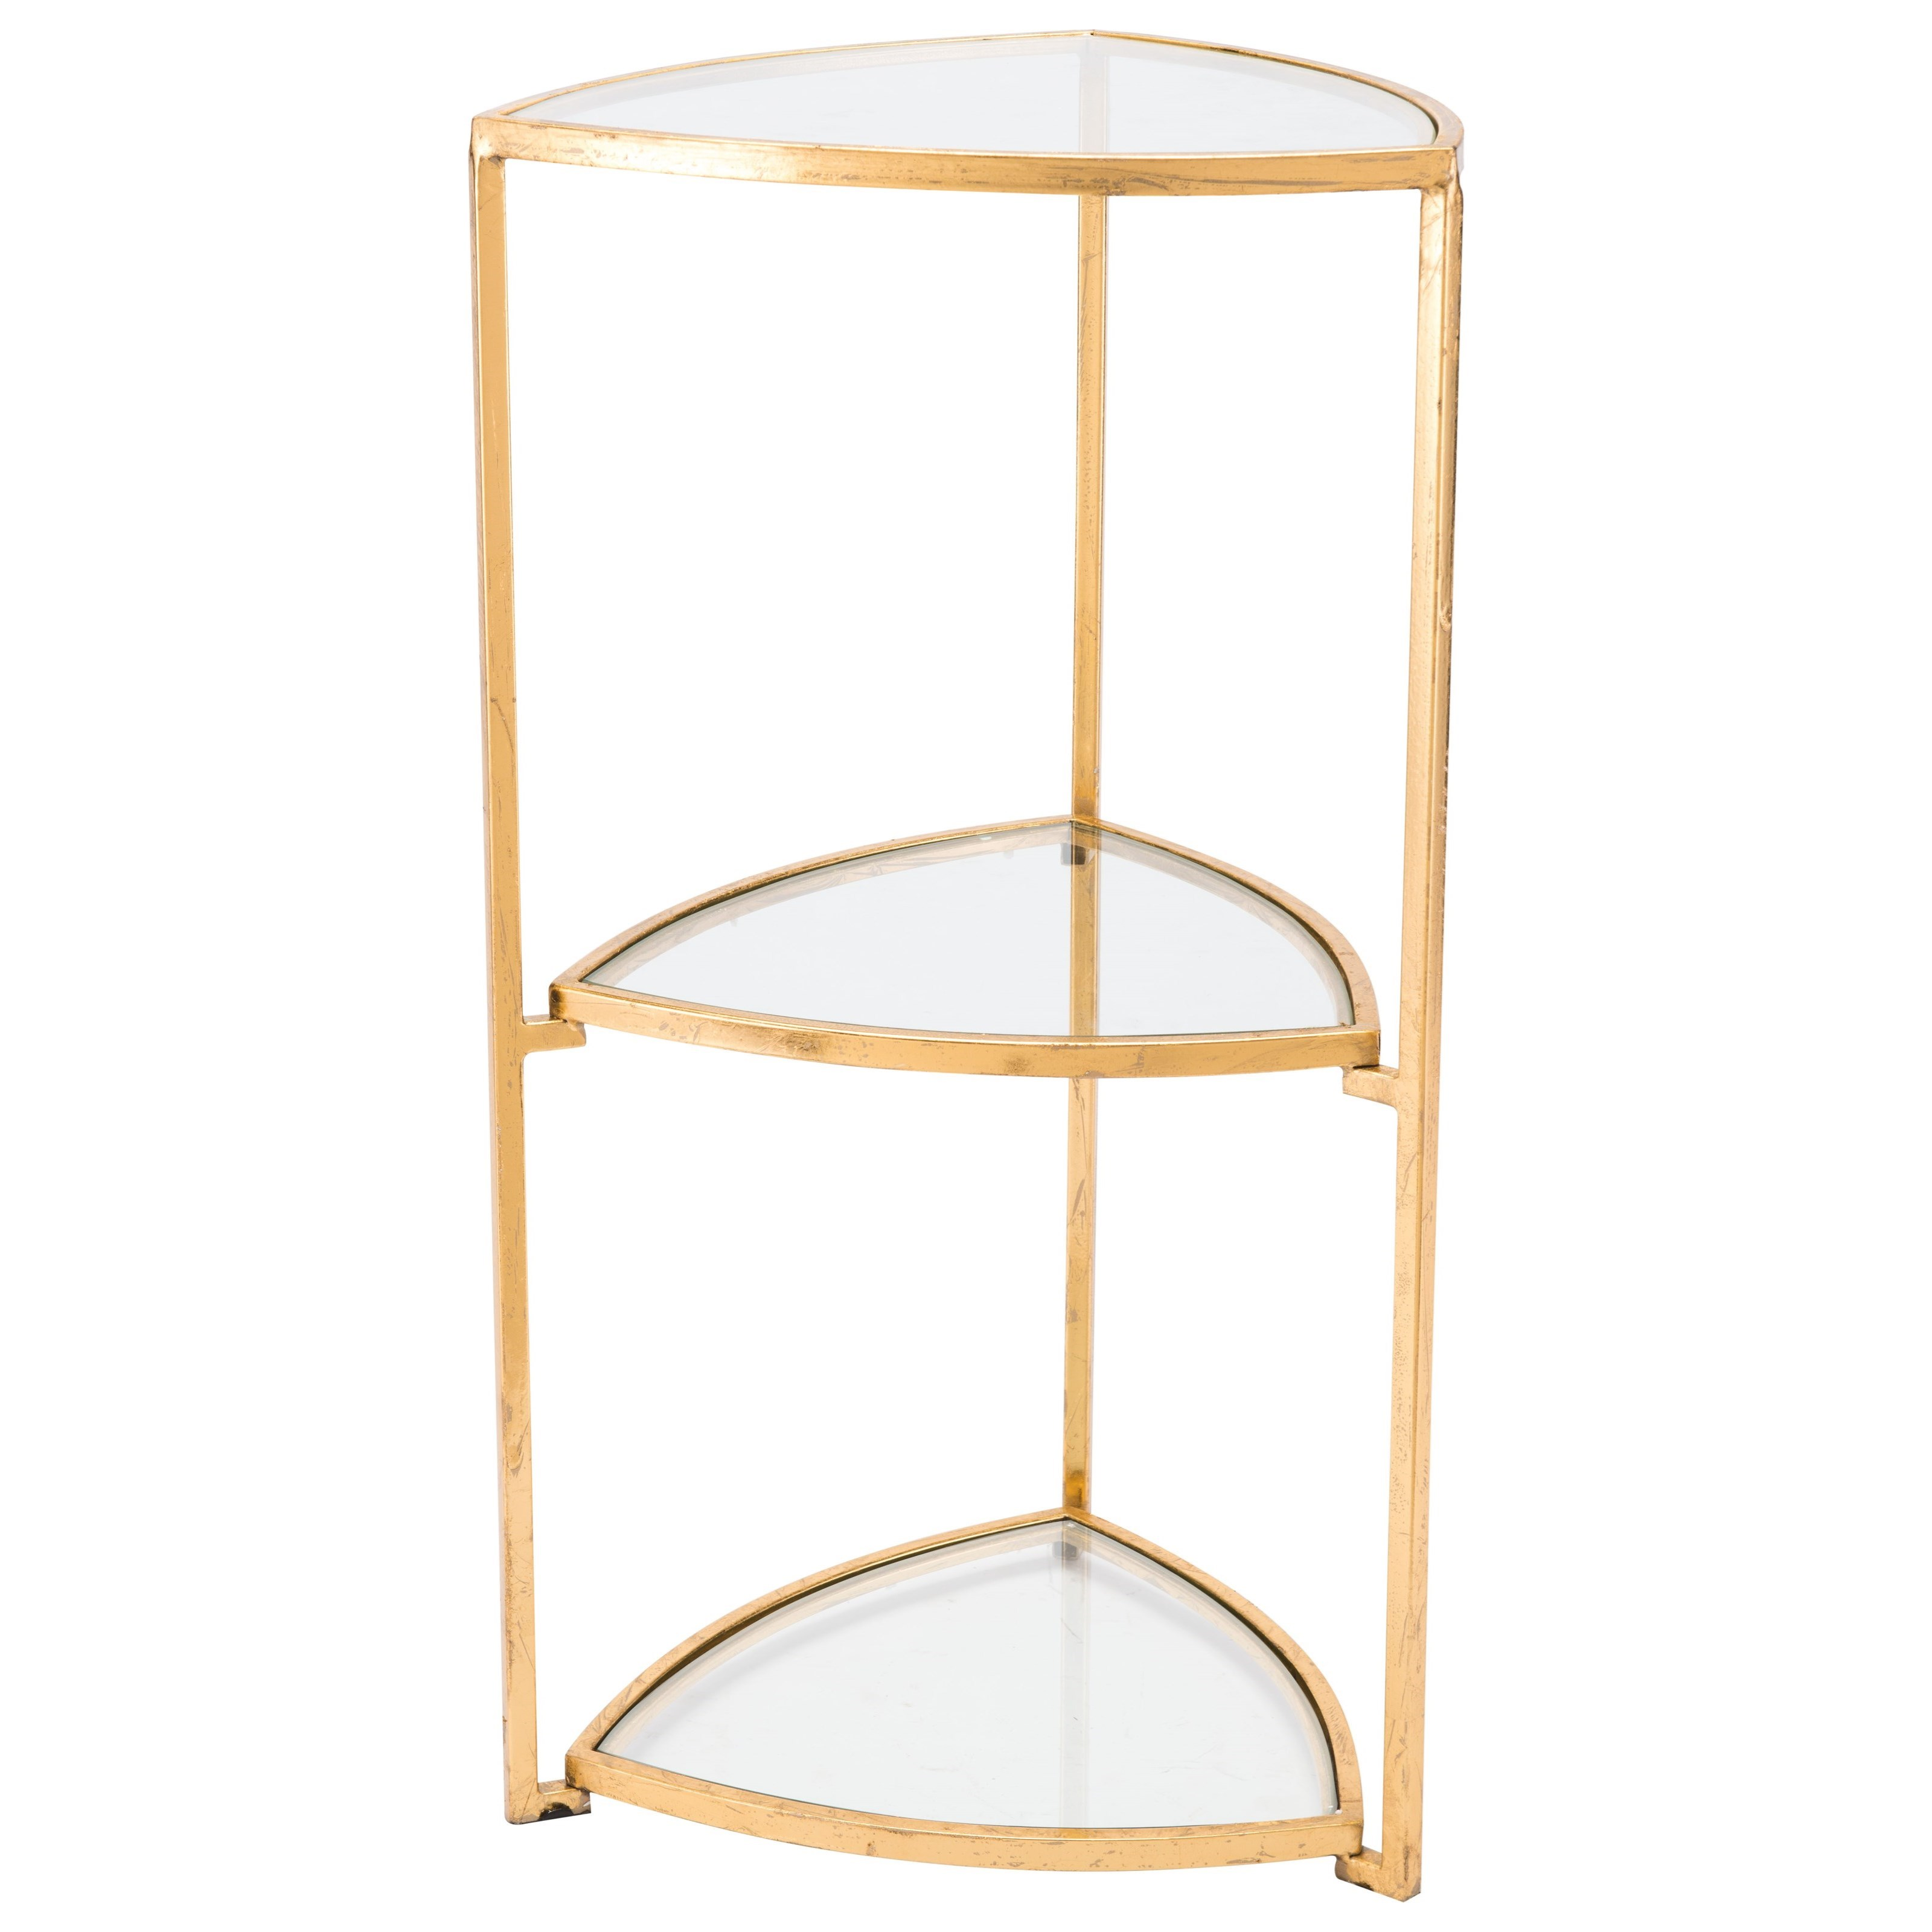 Zuo Accent Tables Corner Tri Level Table - Item Number: A10775